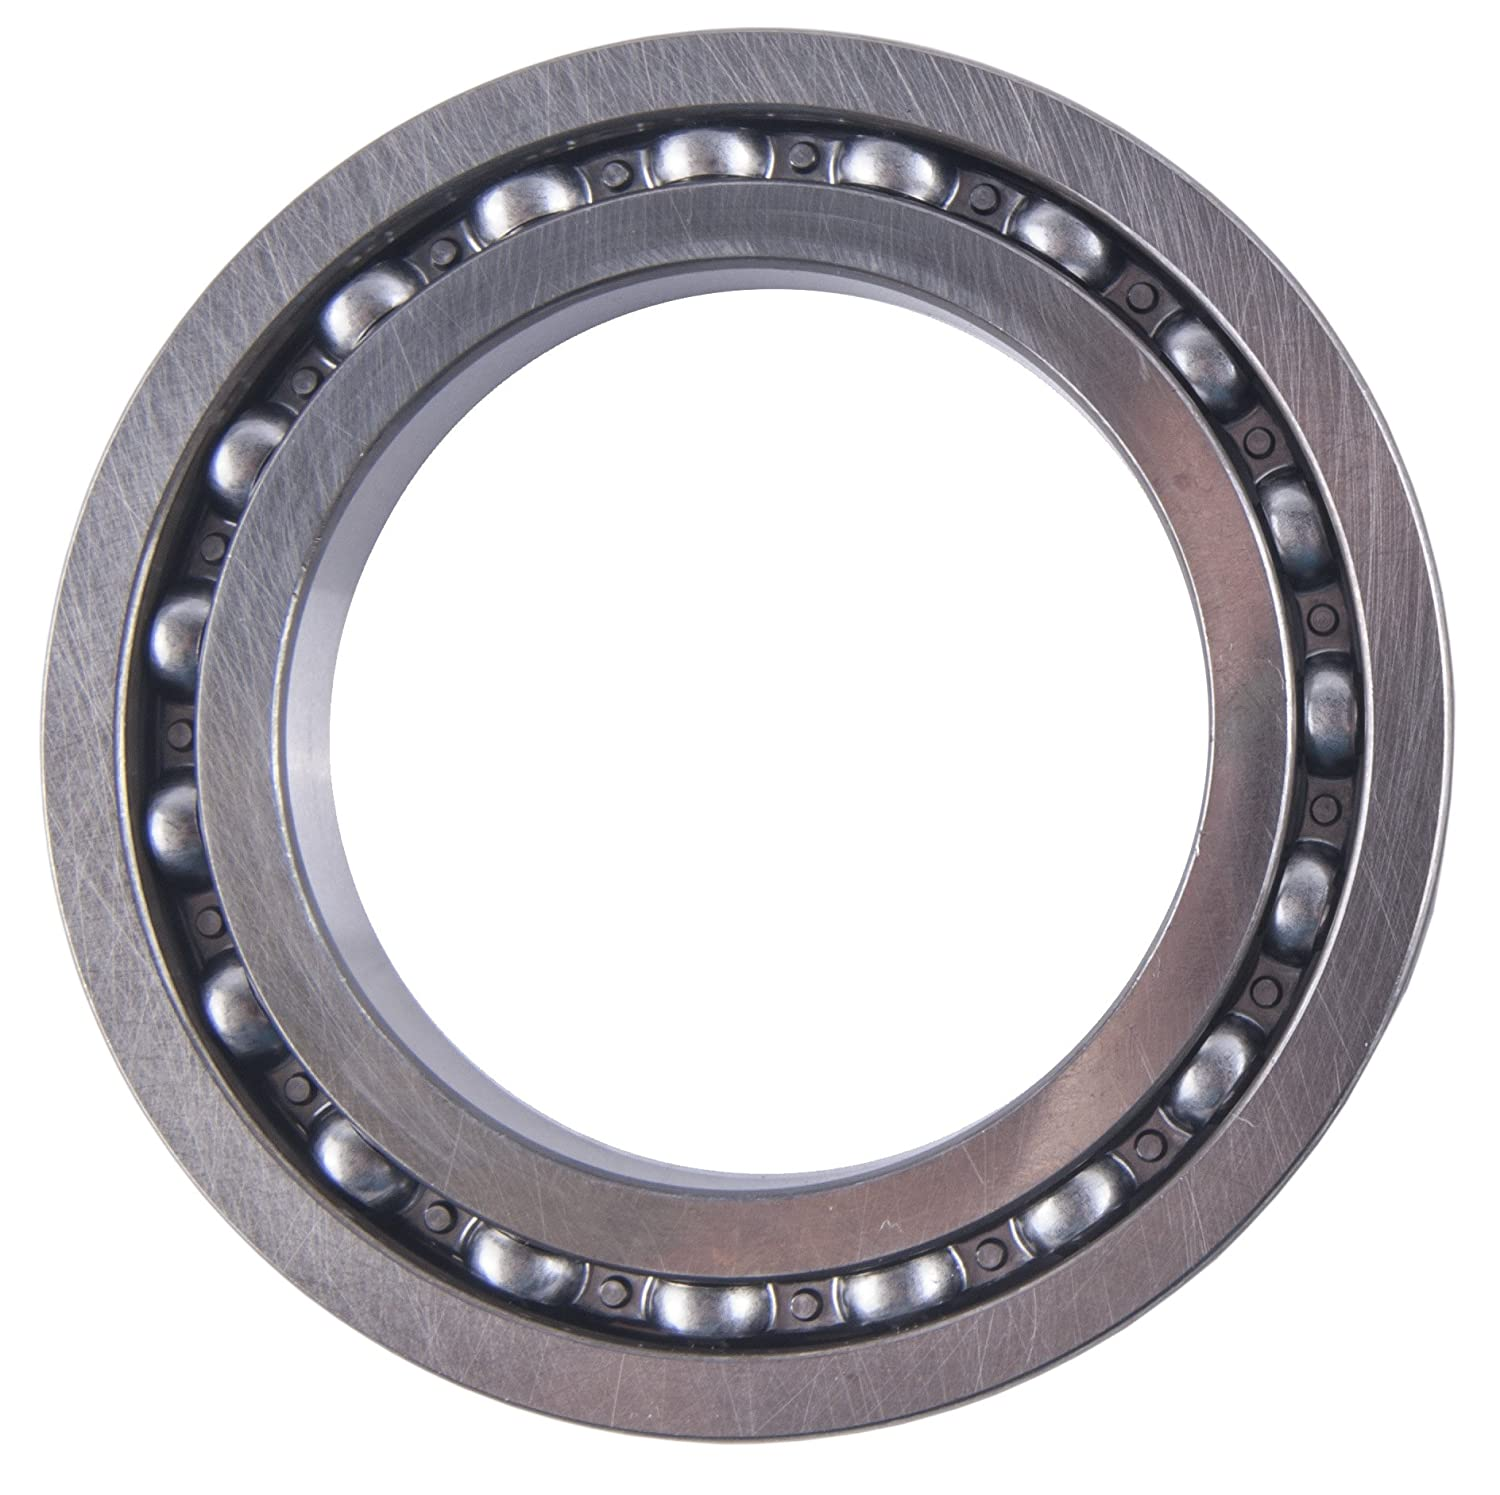 East Lake Axle rear differential bearing /& seal kit compatible with Yamaha 250 Timberwolf 1992 1993 1994-2000